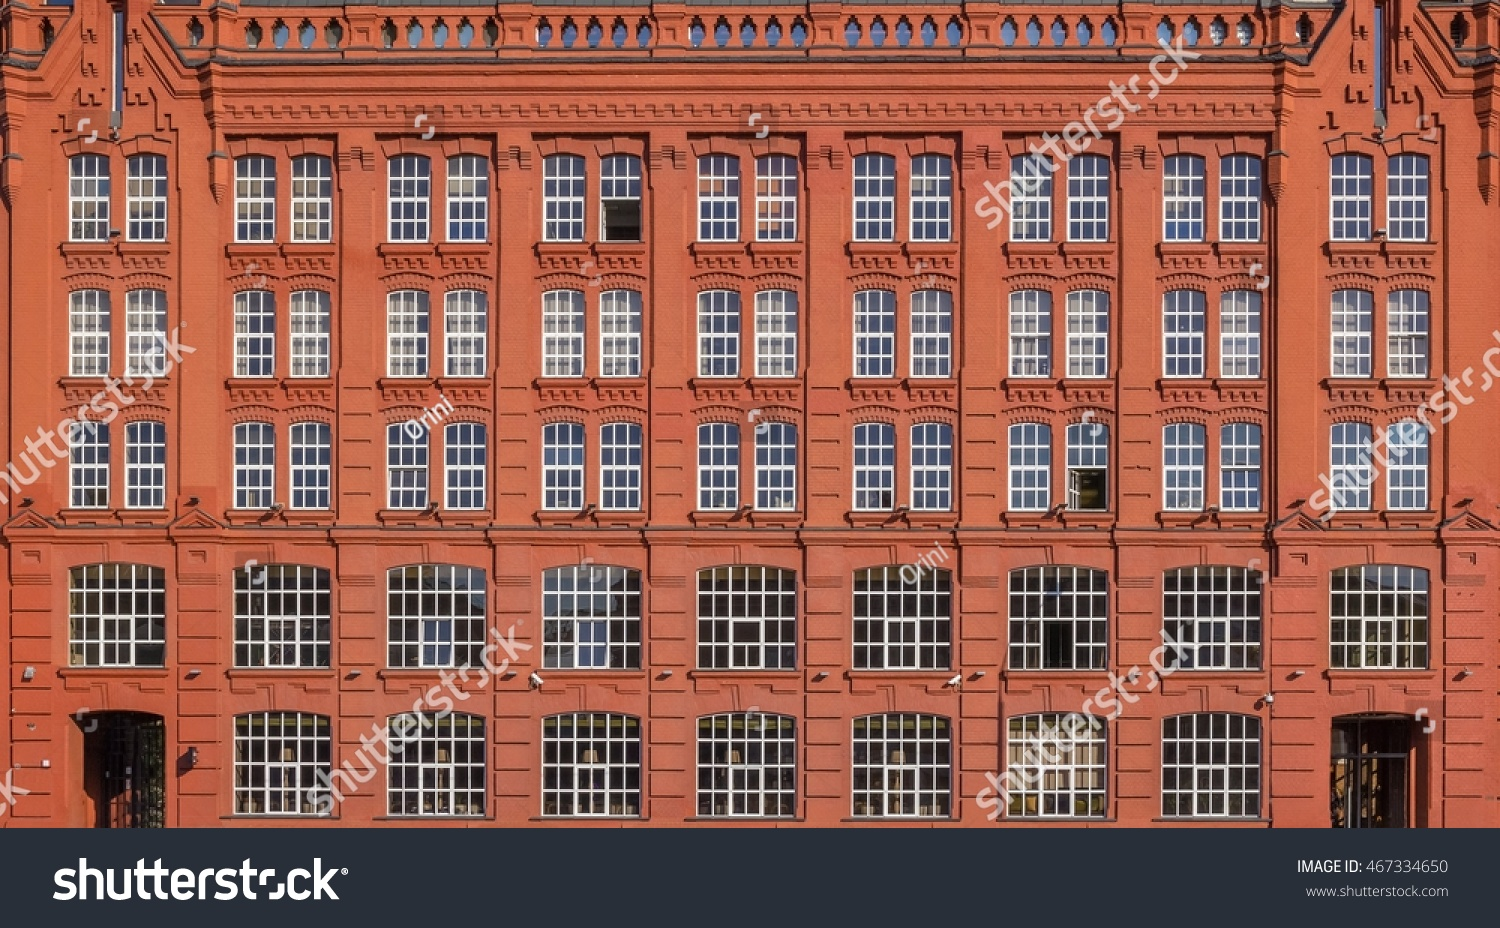 Vintage Architecture Red Brick Classical FacadeStyle Building Industrial Russian Gothic Front View Close